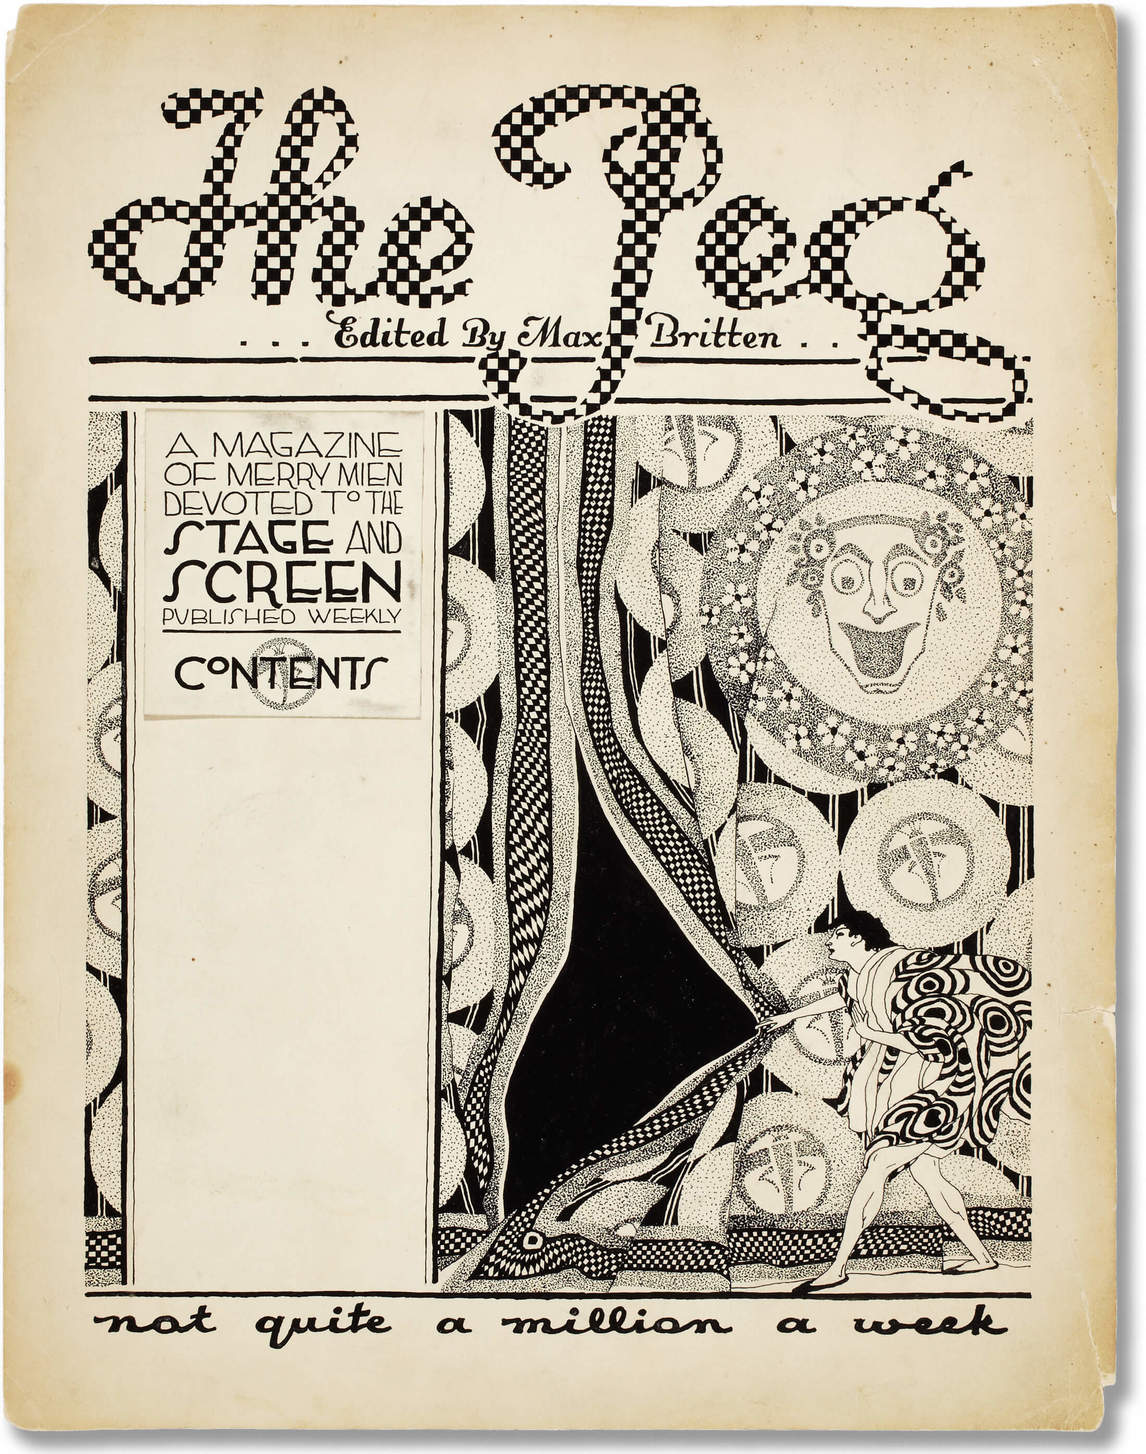 Bertram Brooker, page couverture de The Peg: A Magazine of Merry Mien Devoted to the Stage and Screen, v.1915-1921